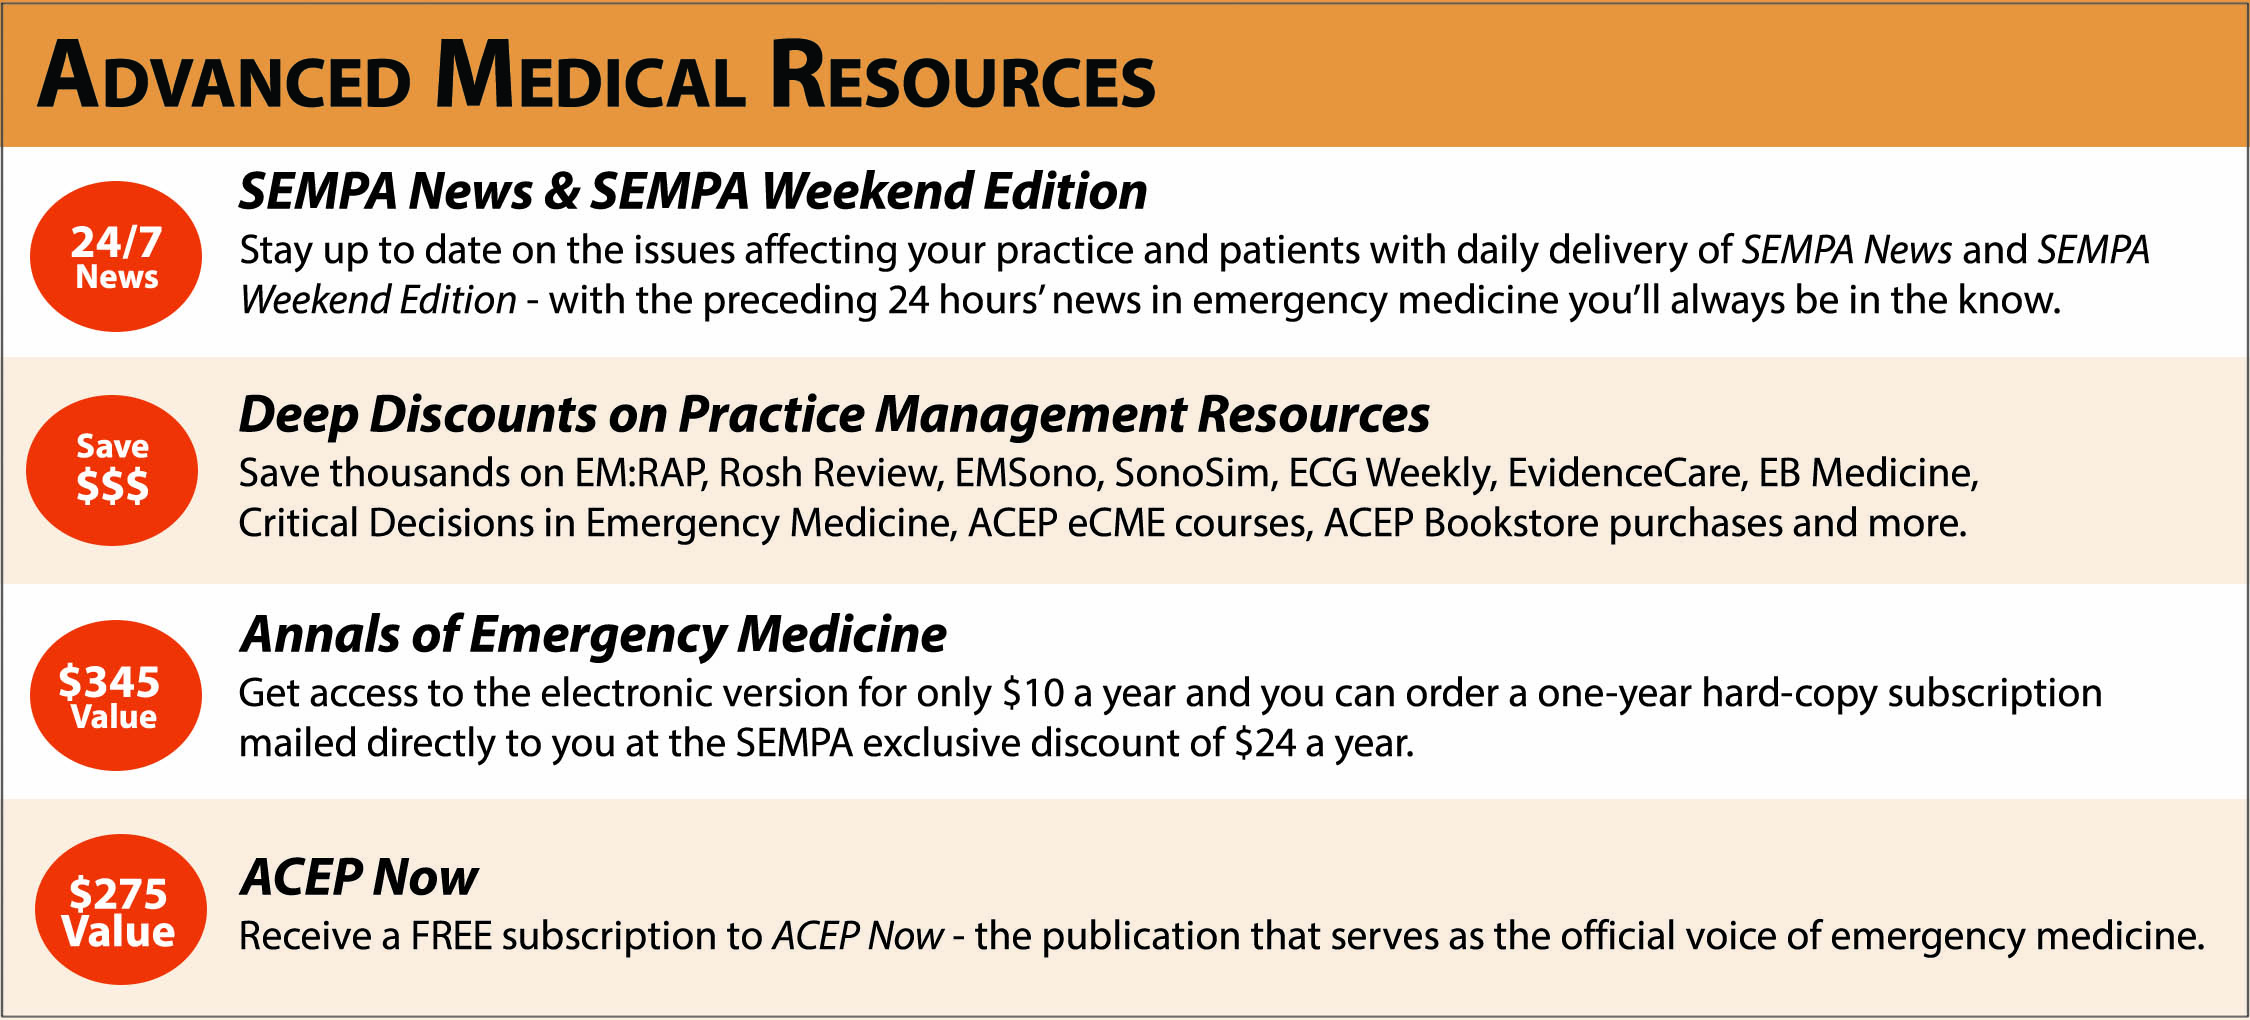 Advanced Medical Resources Box Revised June 2019.jpg